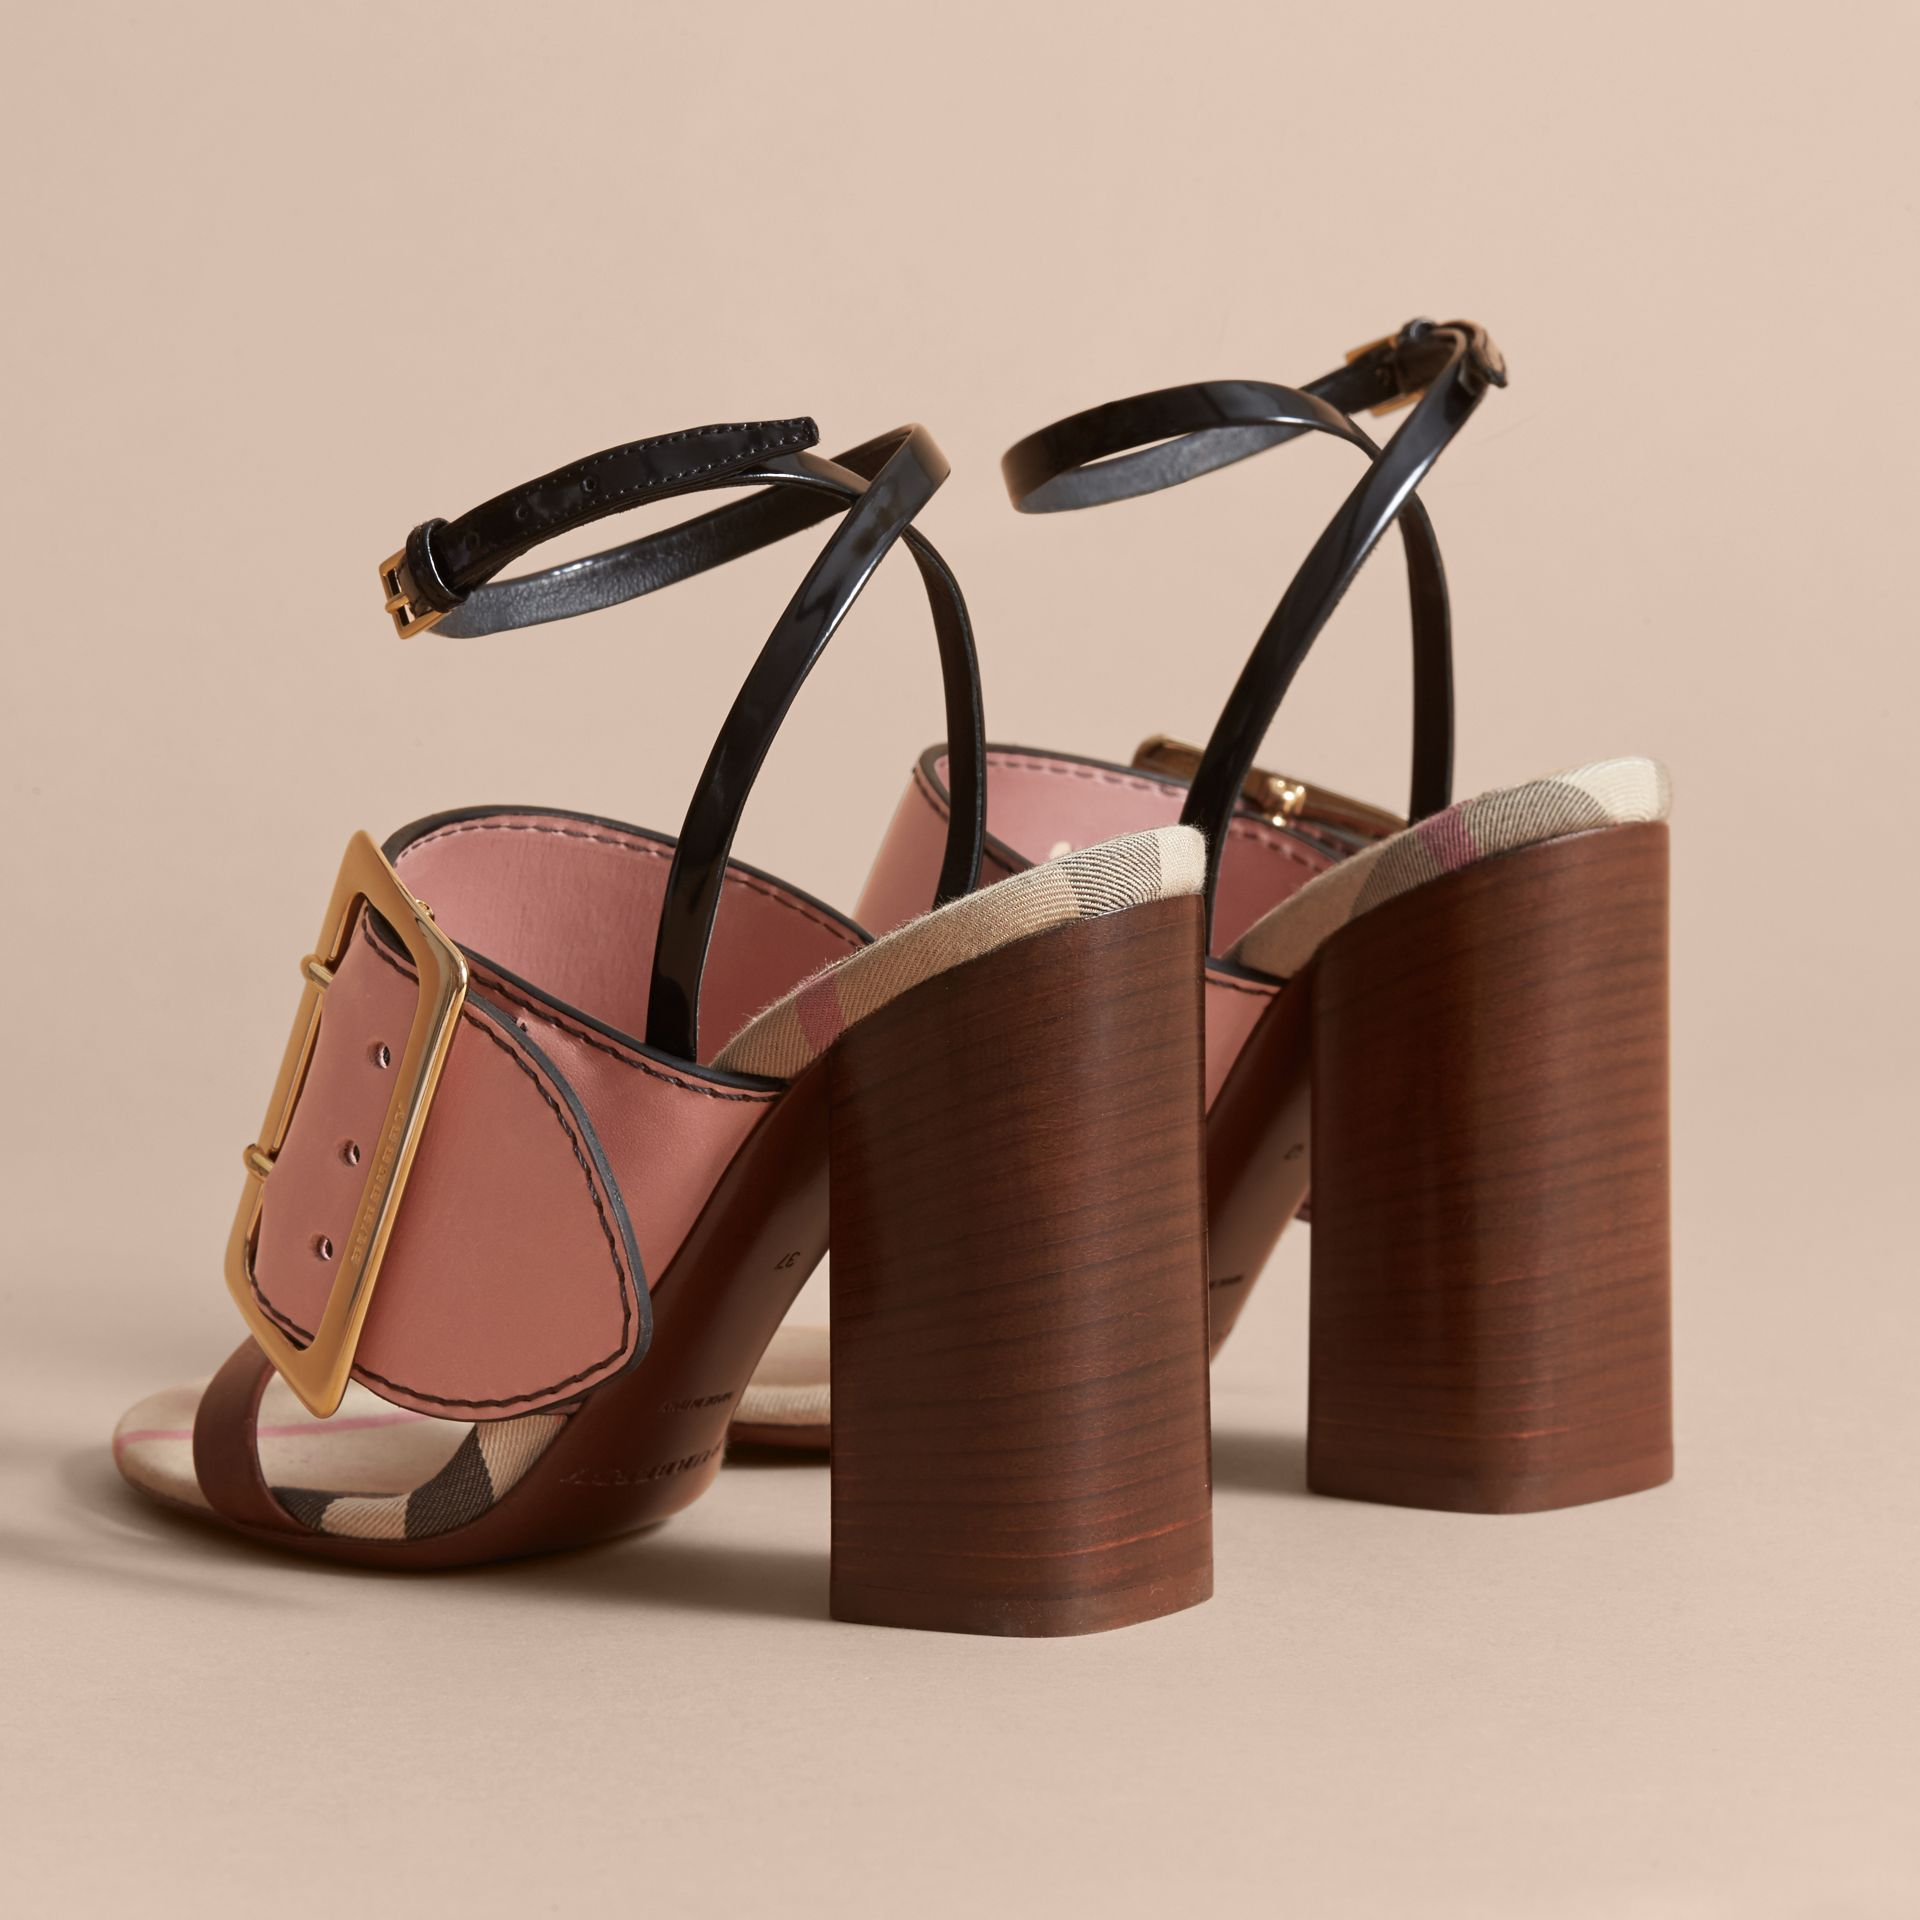 Buckle Detail Colour Block Leather Sandals - Women | Burberry - gallery image 4